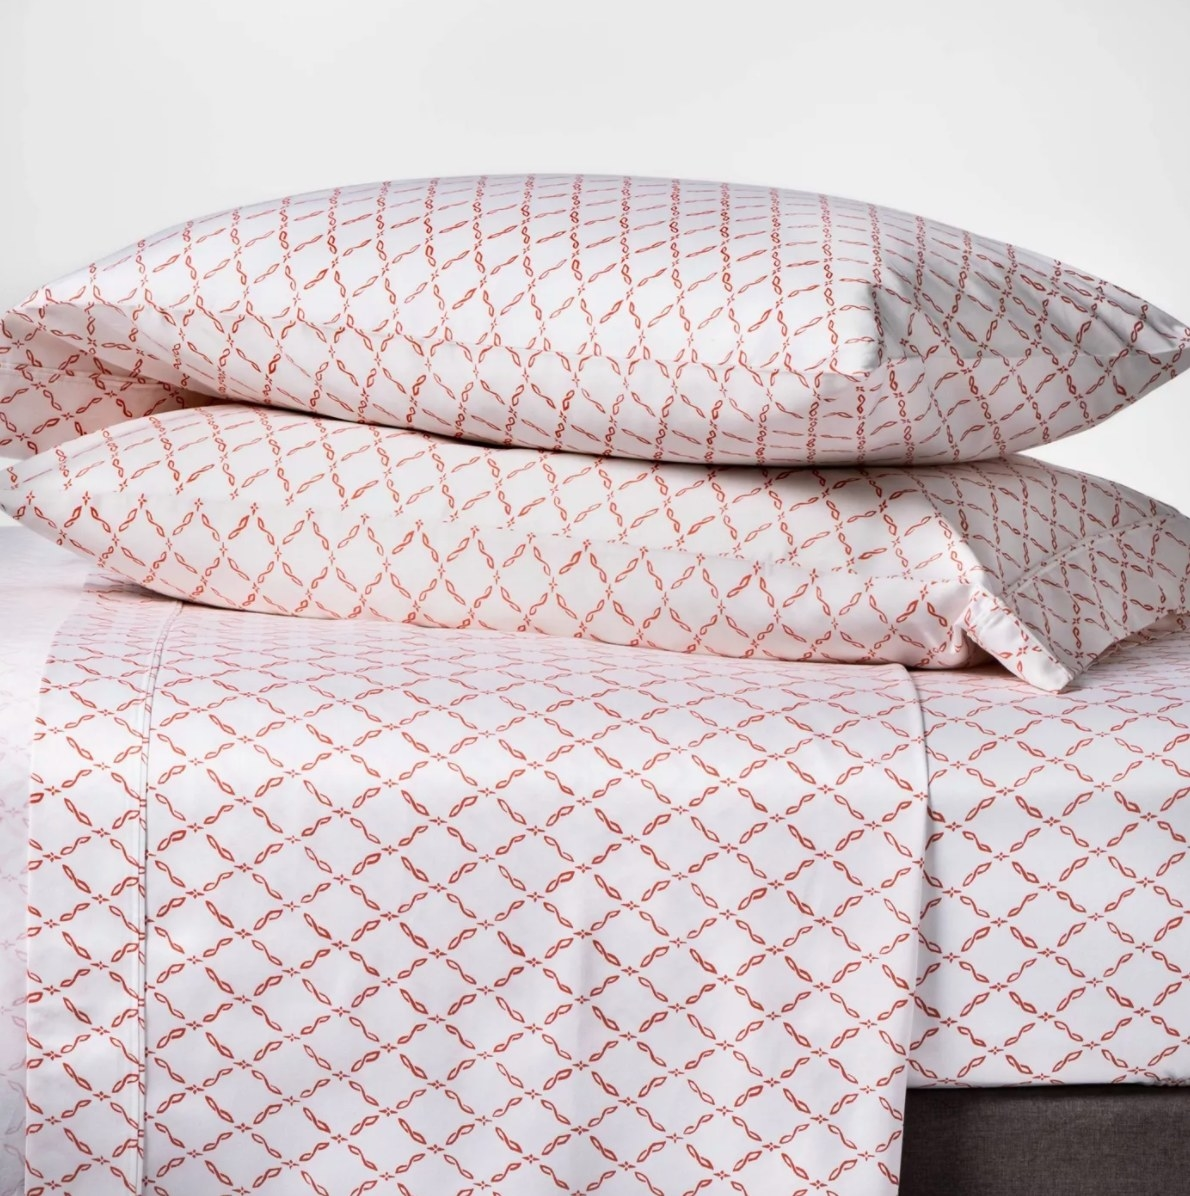 The set of 400 thread count sheets in coral lattice